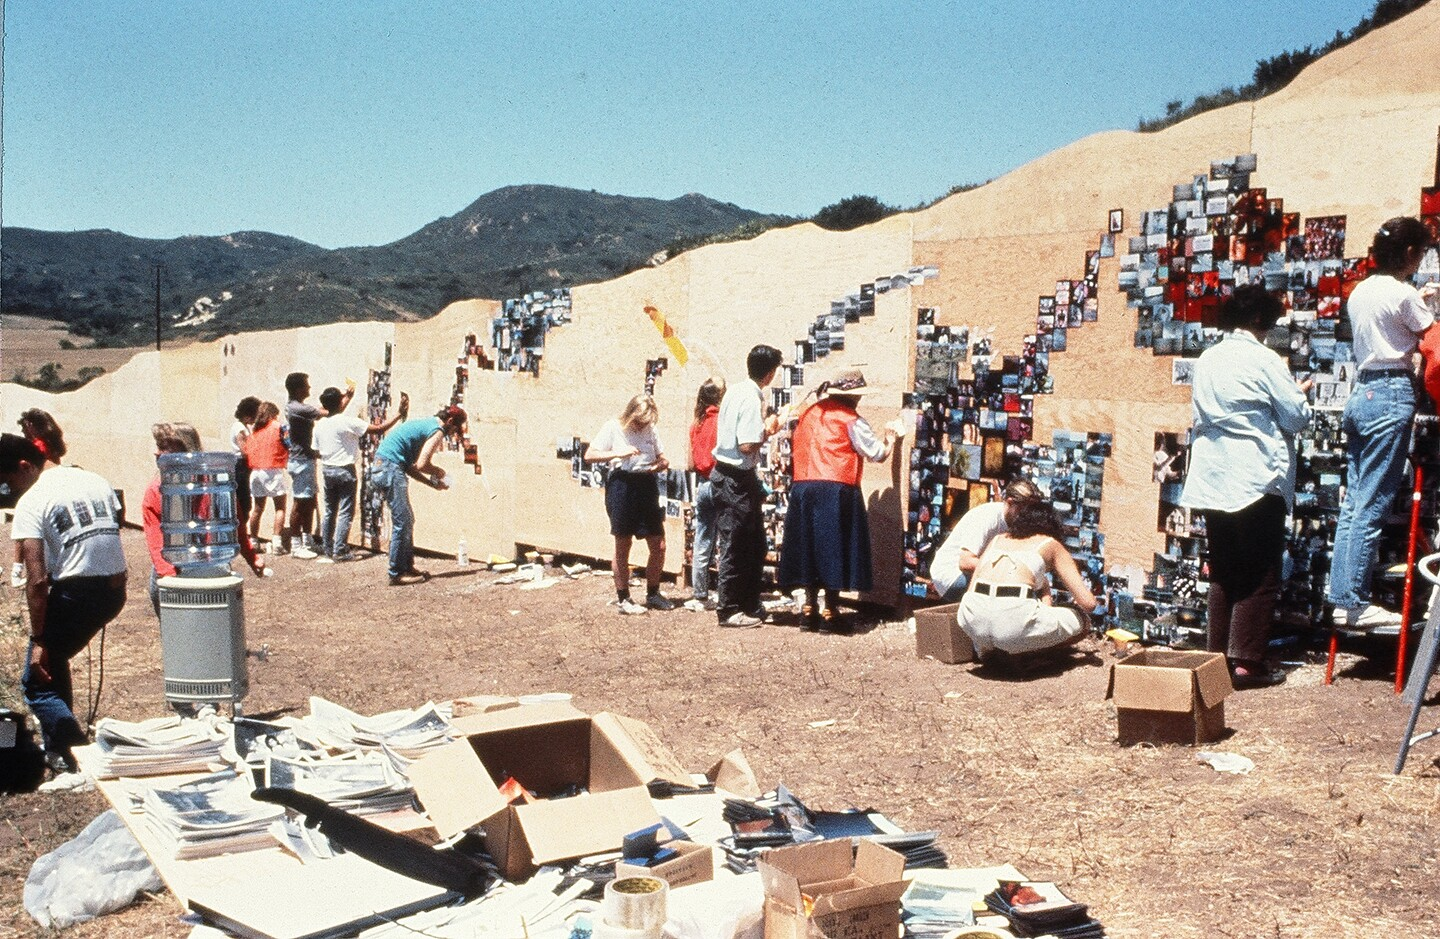 The Laguna Canyon Project by artists Mark Chamberlain and Jerry Burchfield | Photo: Courtesy of BC Space